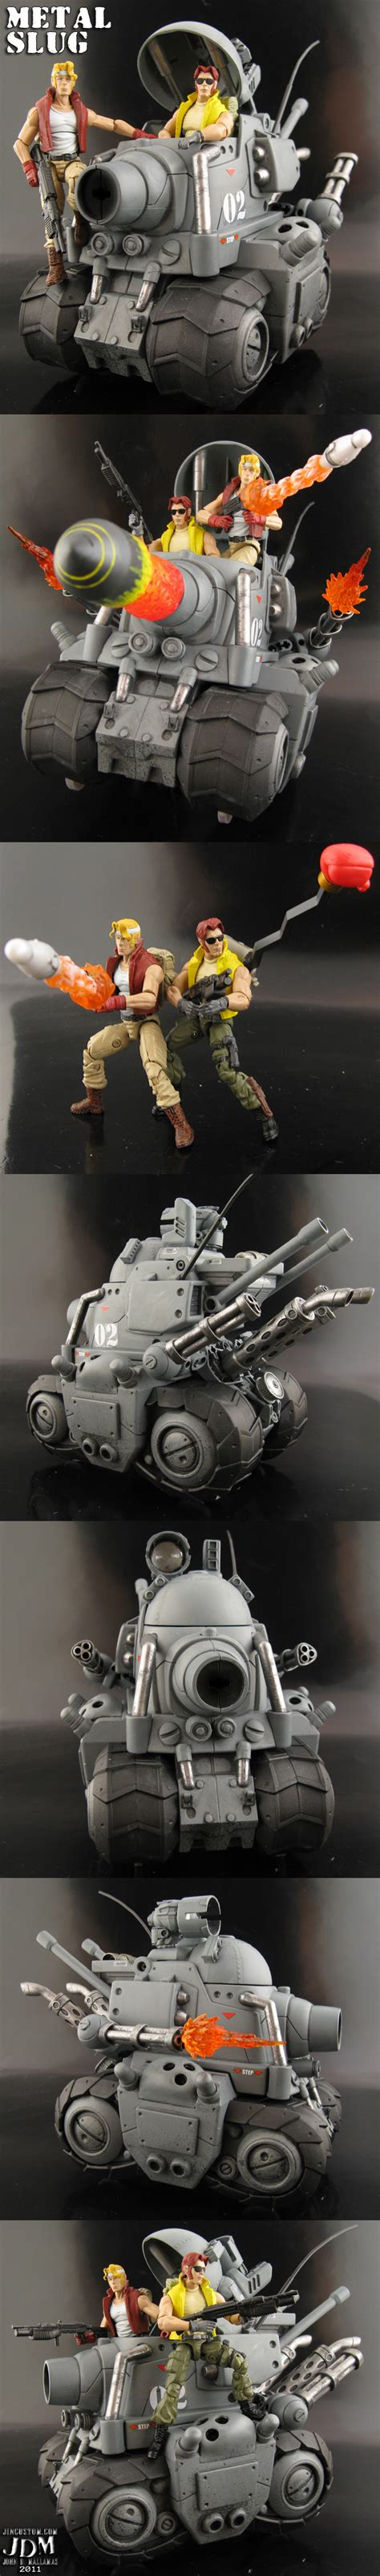 Jo In Stripe Sound Toys custom 1 18 scale metal slug tank with marco and tarma